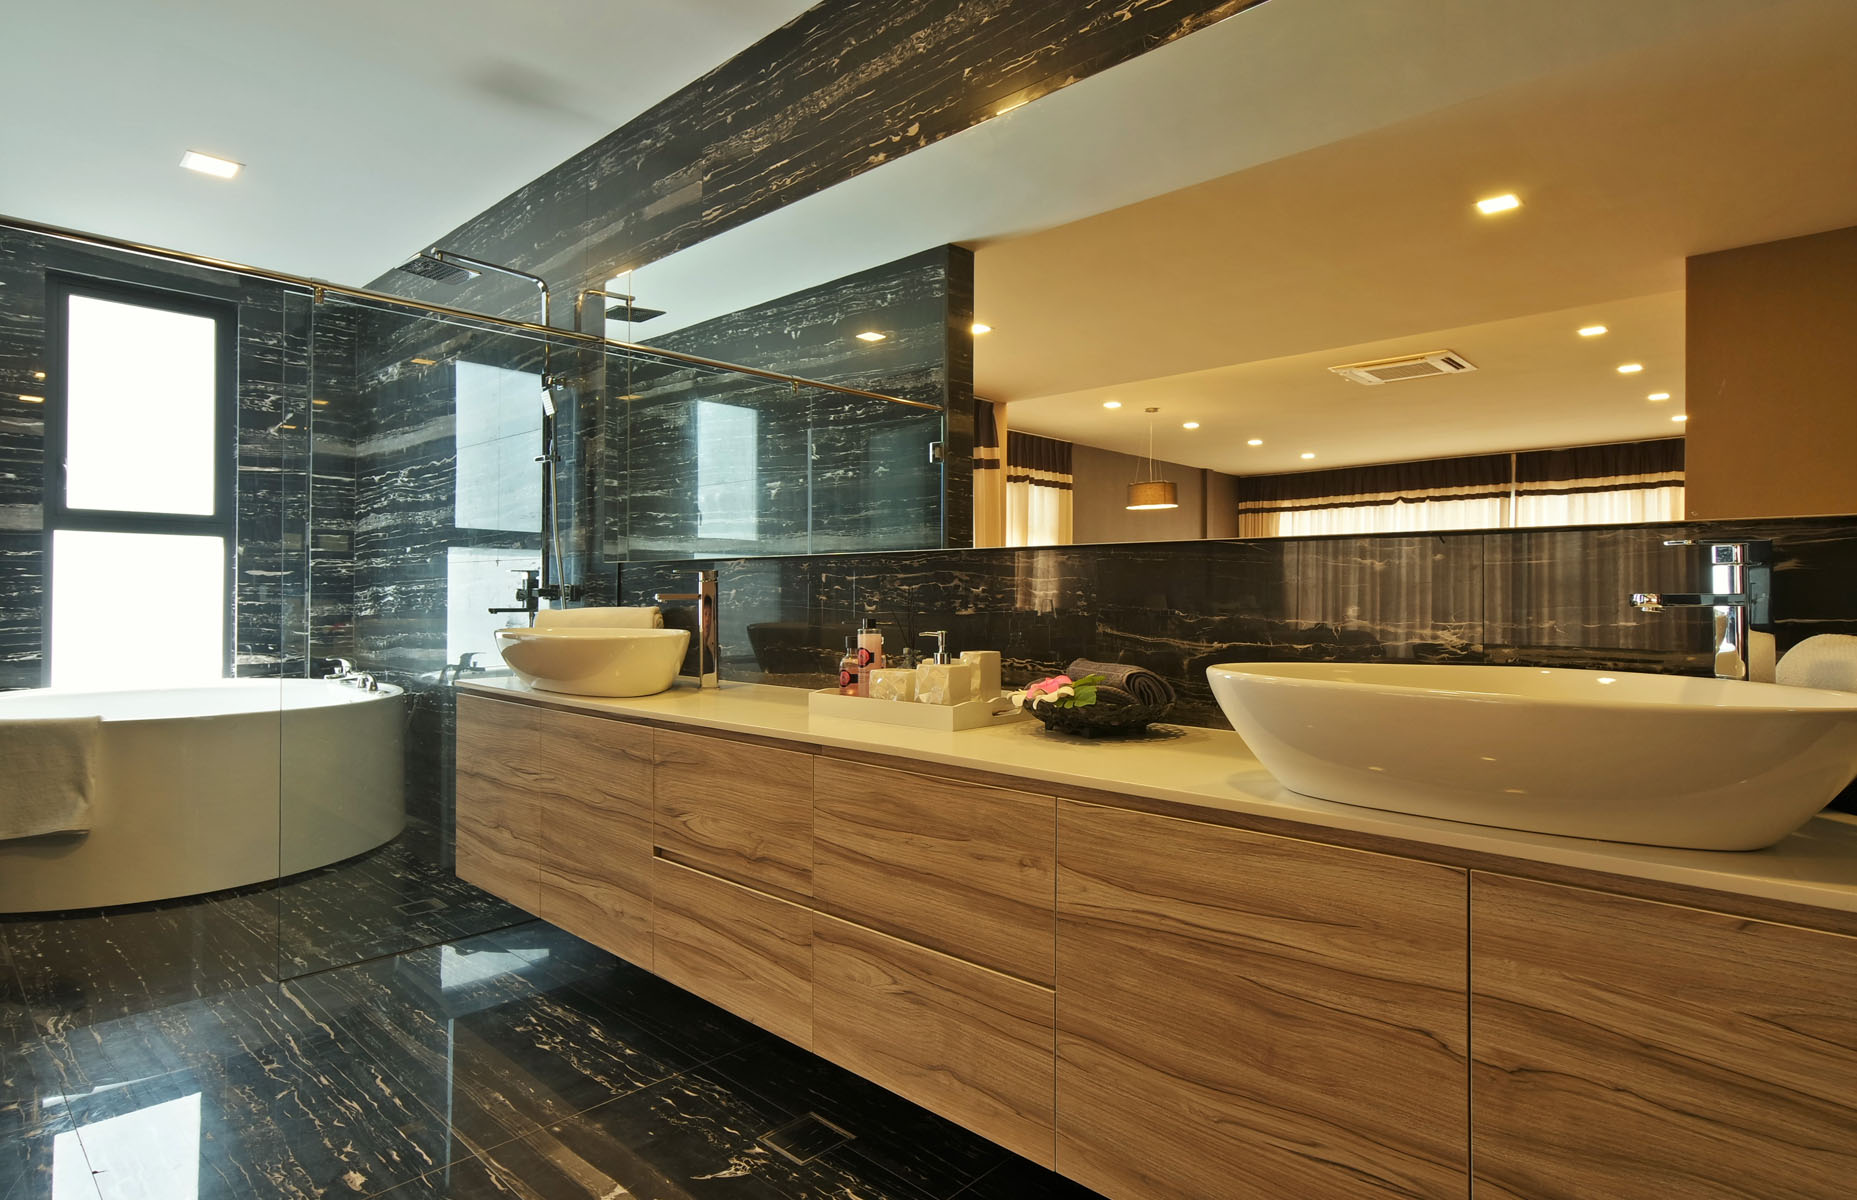 Luxury bathroom decor ideas